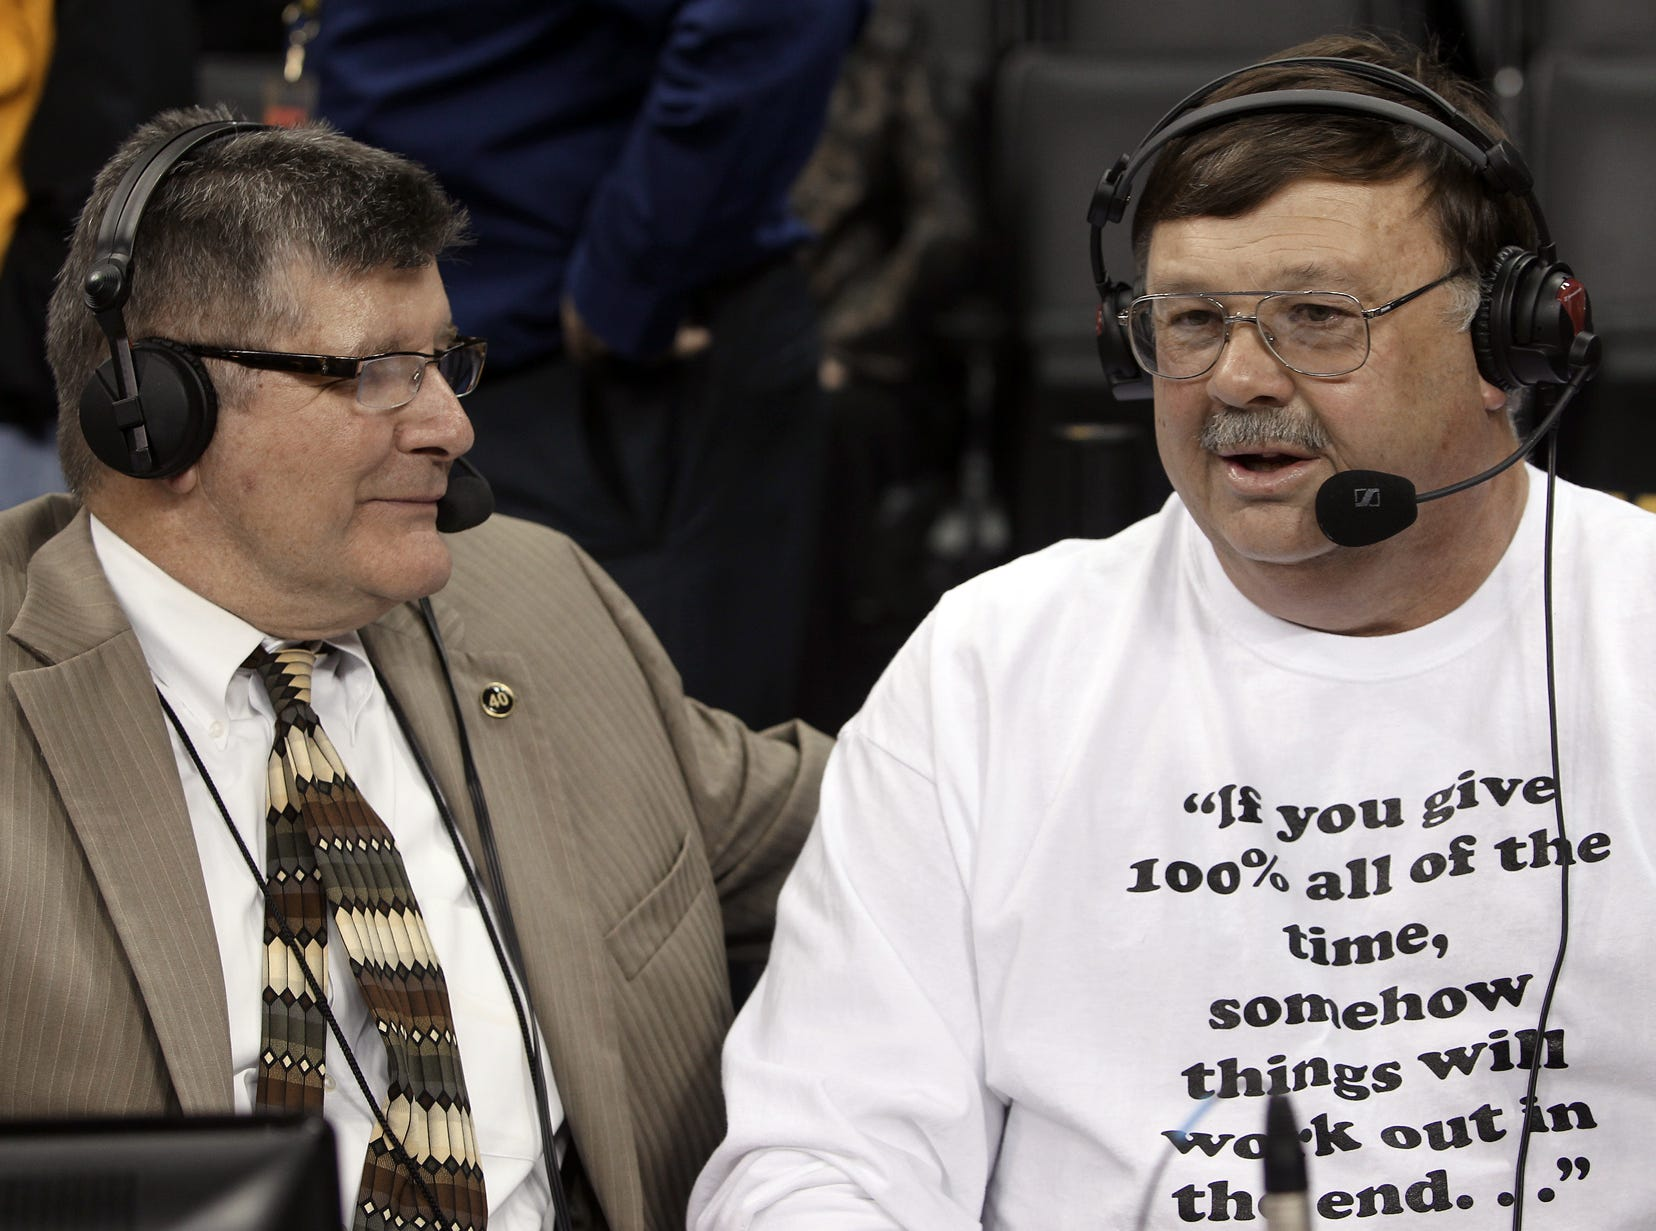 From 2013: Mike Street, right, talked with radio announcer Gary Dolphin, left, just before the Chris Street 20th anniversary game at Carver-Hawkeye Arena, Iowa vs. Wisconsin, on Saturday night Jan. 19th, 2013. Chris was a Iowa star basketball player who died Jan. 19, 1993.